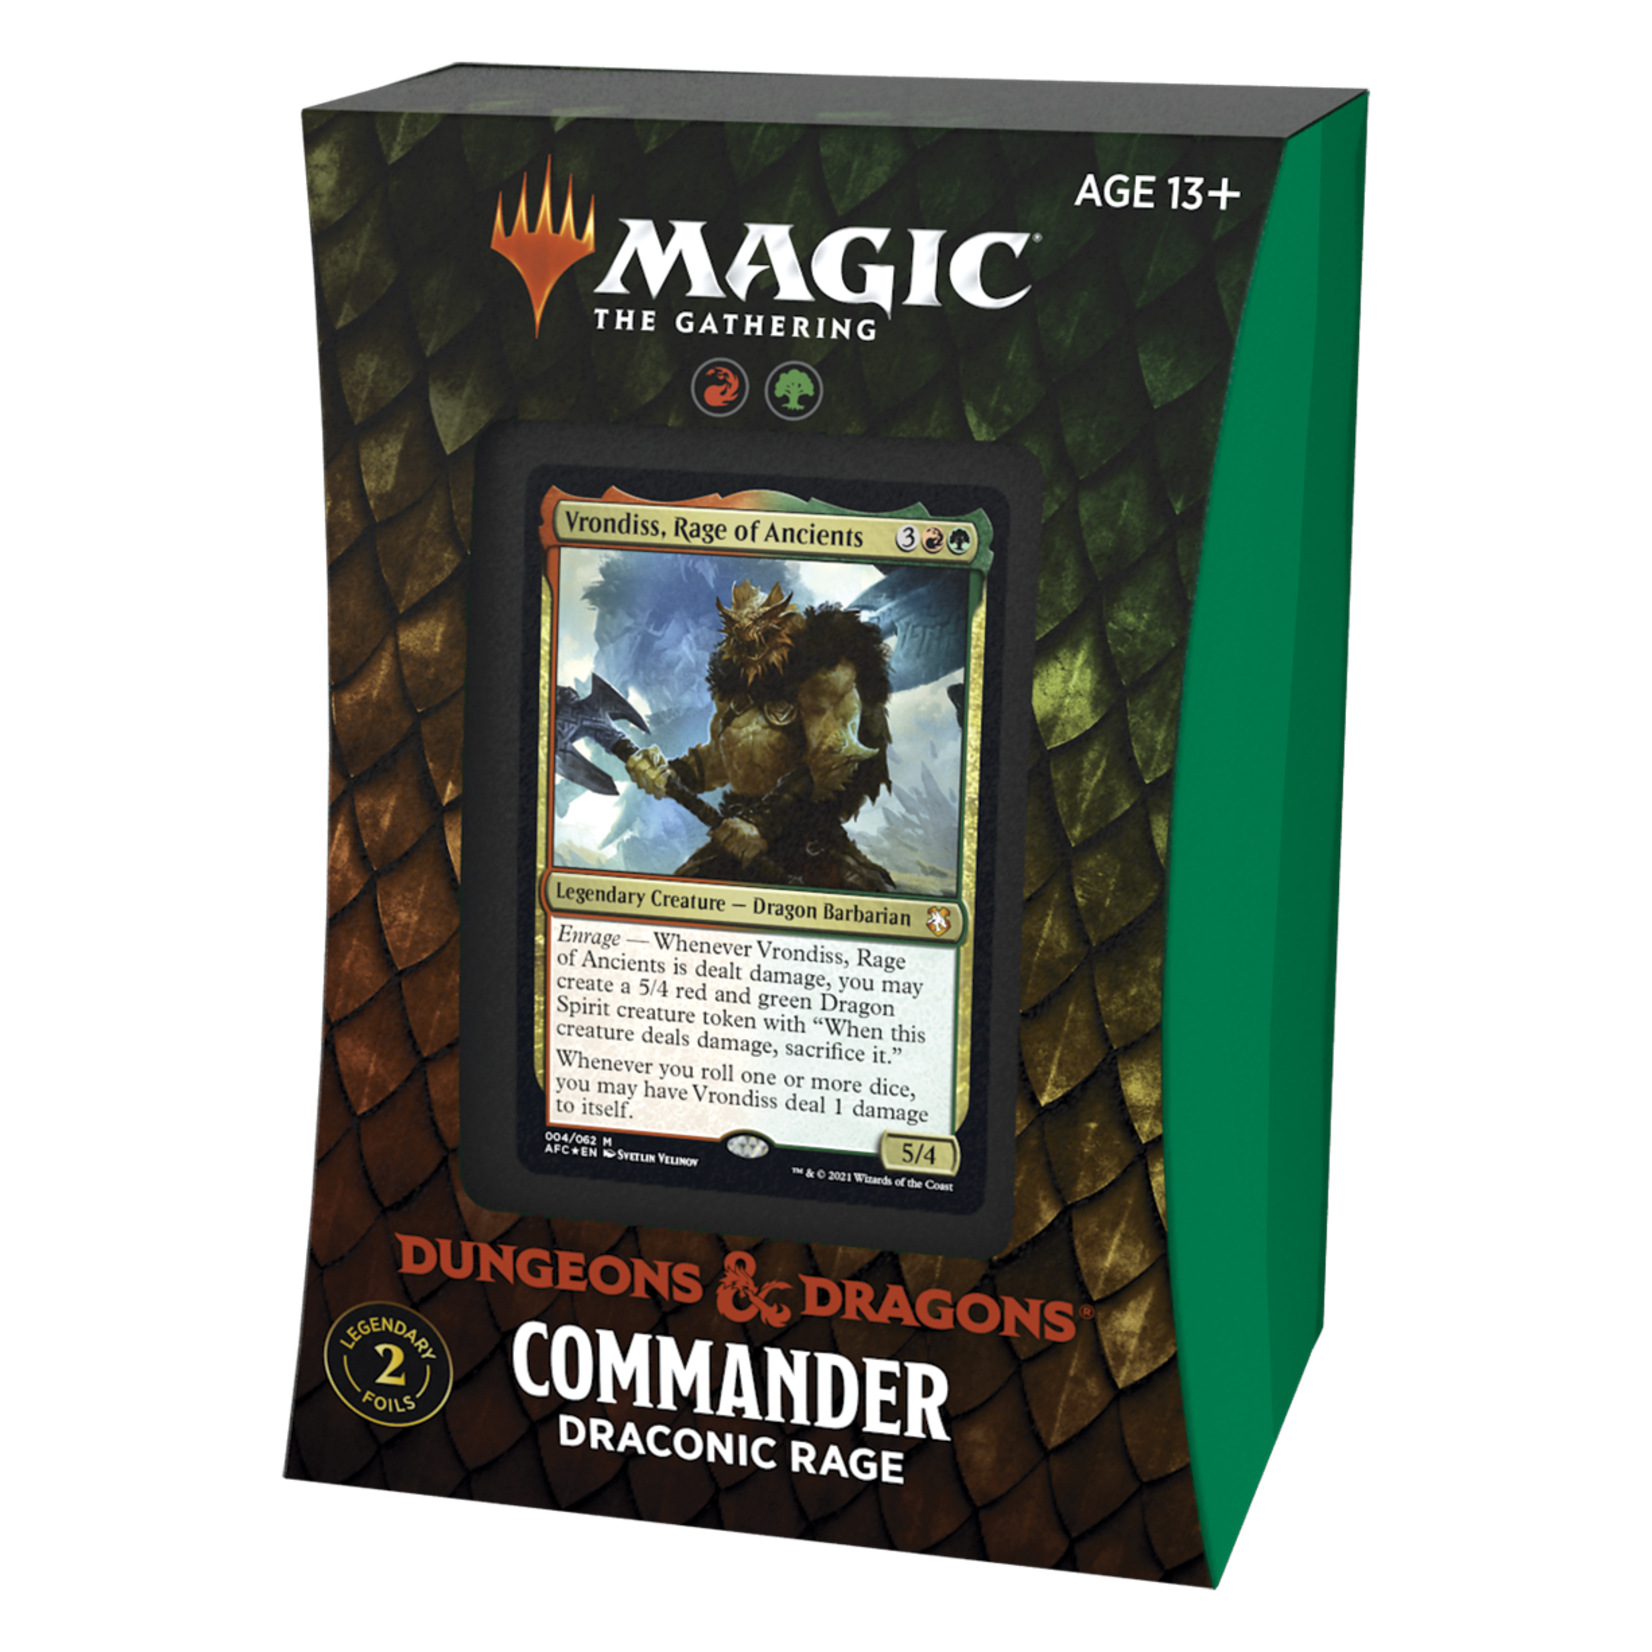 Magic: The Gathering Magic: The Gathering - Adventures in the Forgotten Realms Commander Deck - Draconic Rage